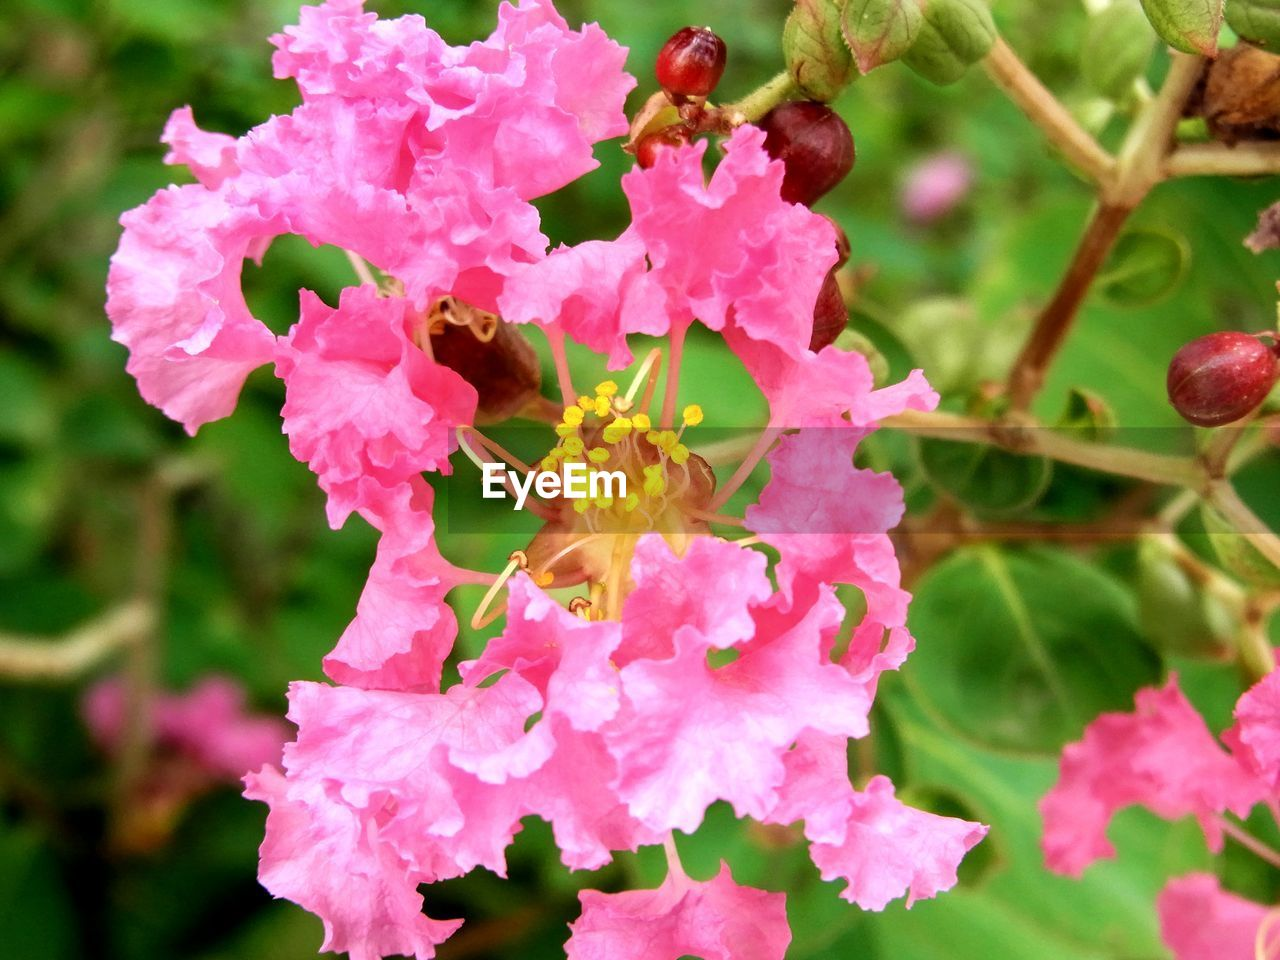 flowering plant, flower, plant, growth, beauty in nature, petal, fragility, freshness, close-up, vulnerability, animal, animal wildlife, flower head, animal themes, animals in the wild, insect, invertebrate, pink color, inflorescence, one animal, no people, pollen, pollination, outdoors